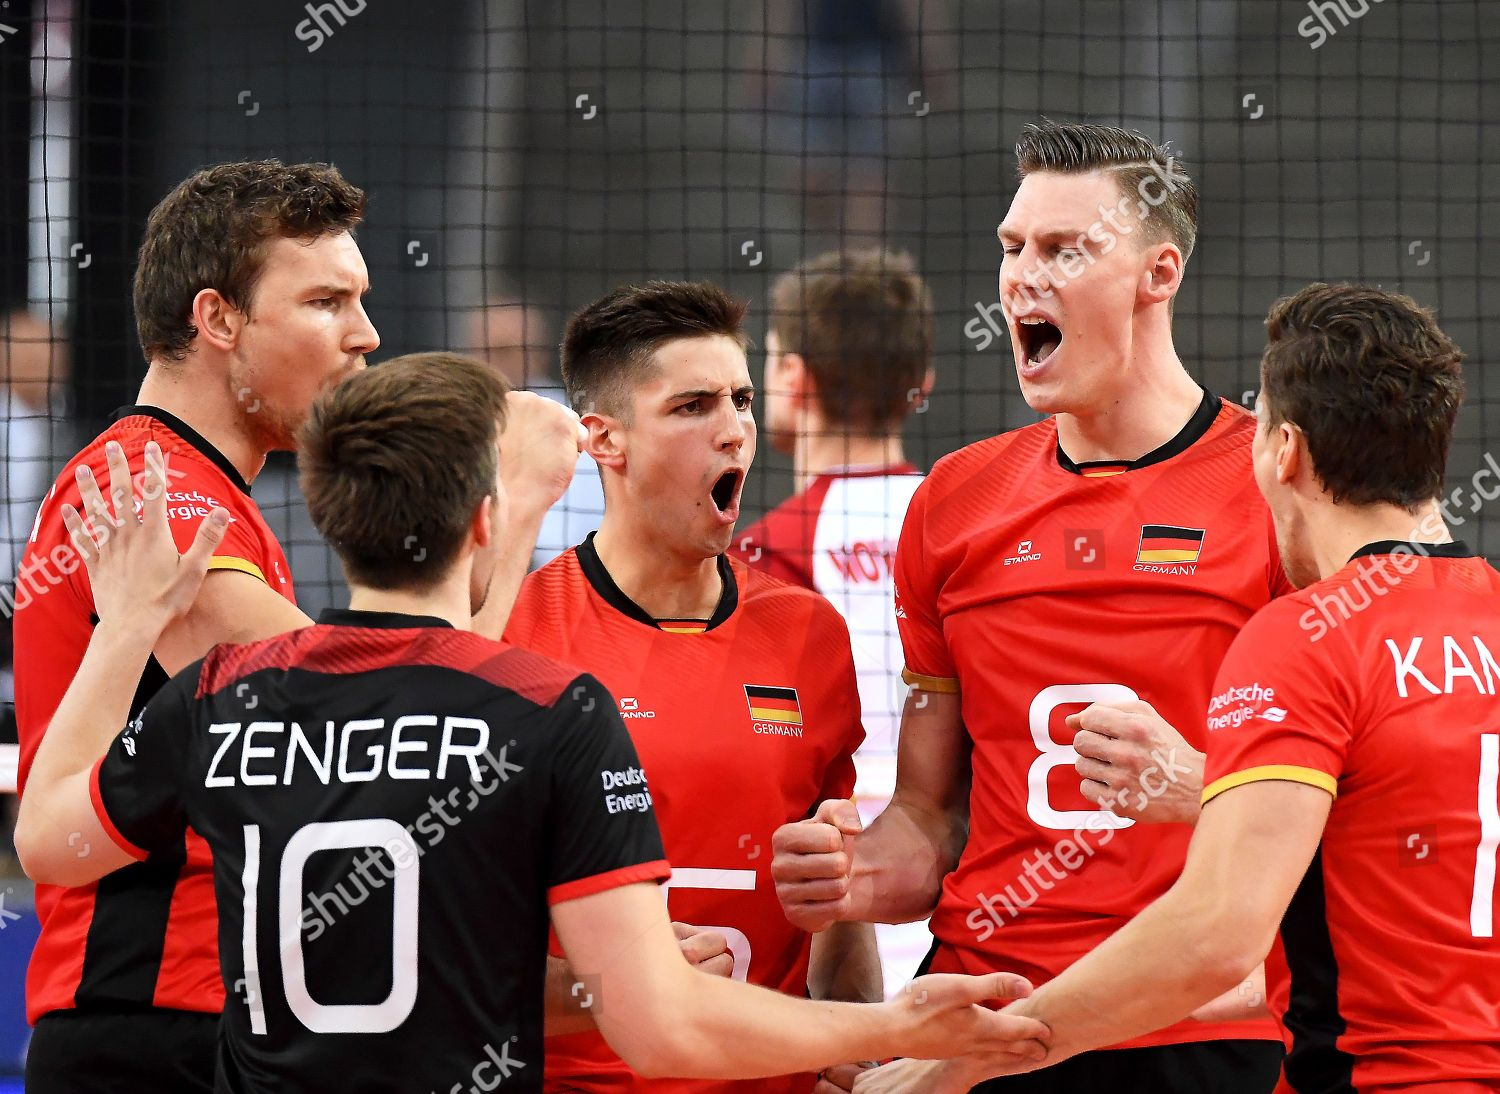 German players celebrate point during FIVB Volleyball Editorial